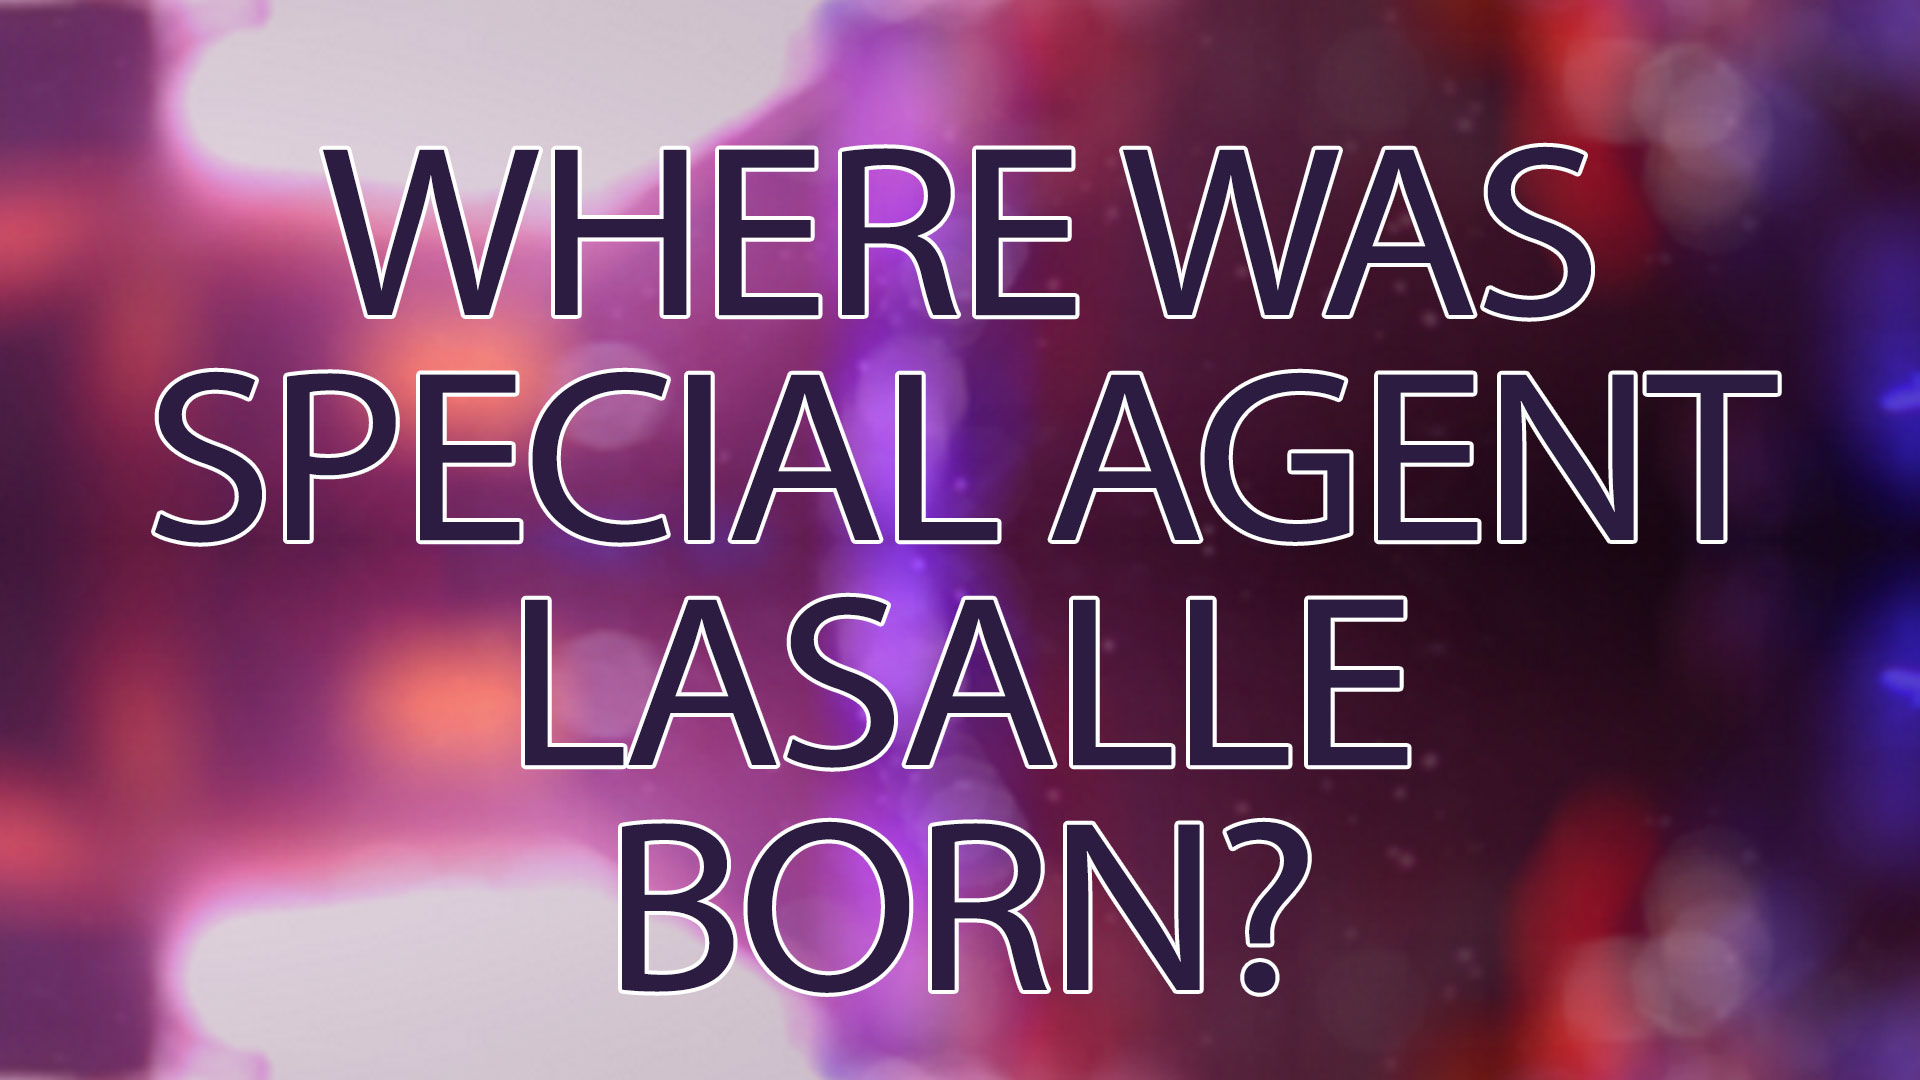 Where was Special Agent Lasalle Born?